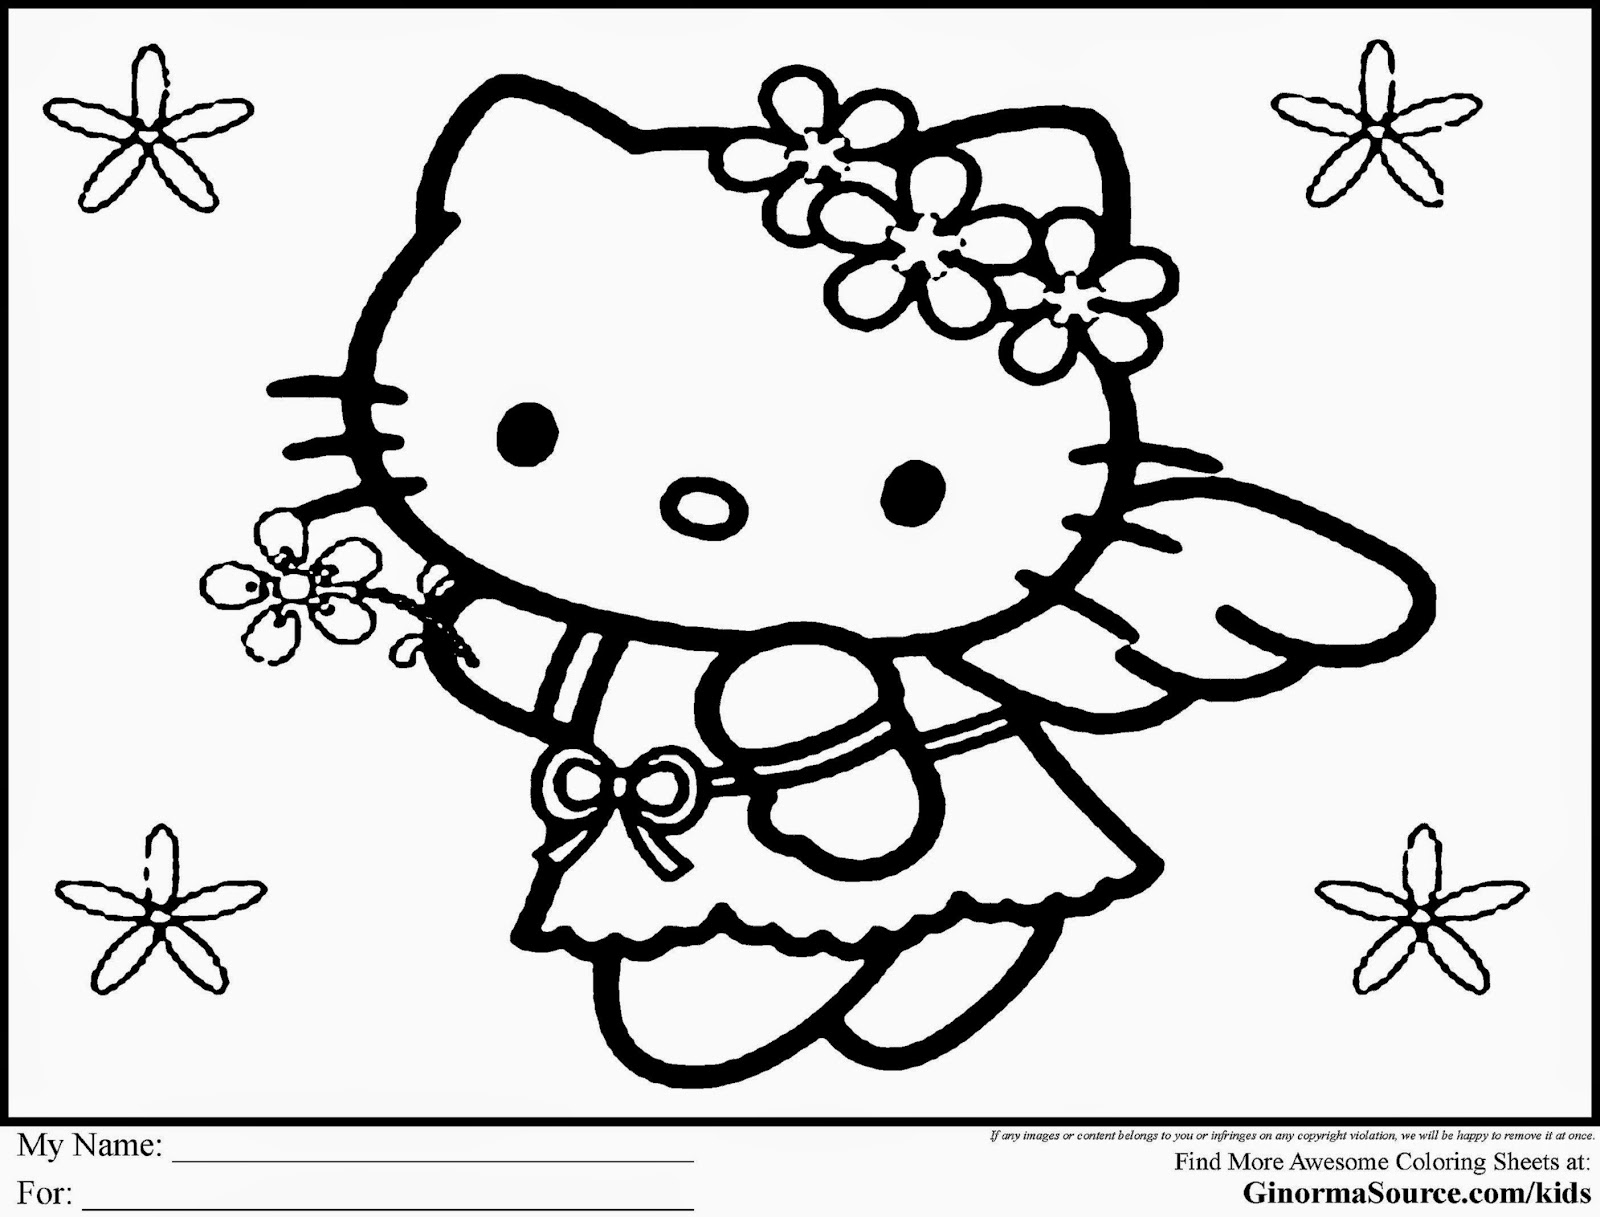 February 2015 | Free Coloring Sheet